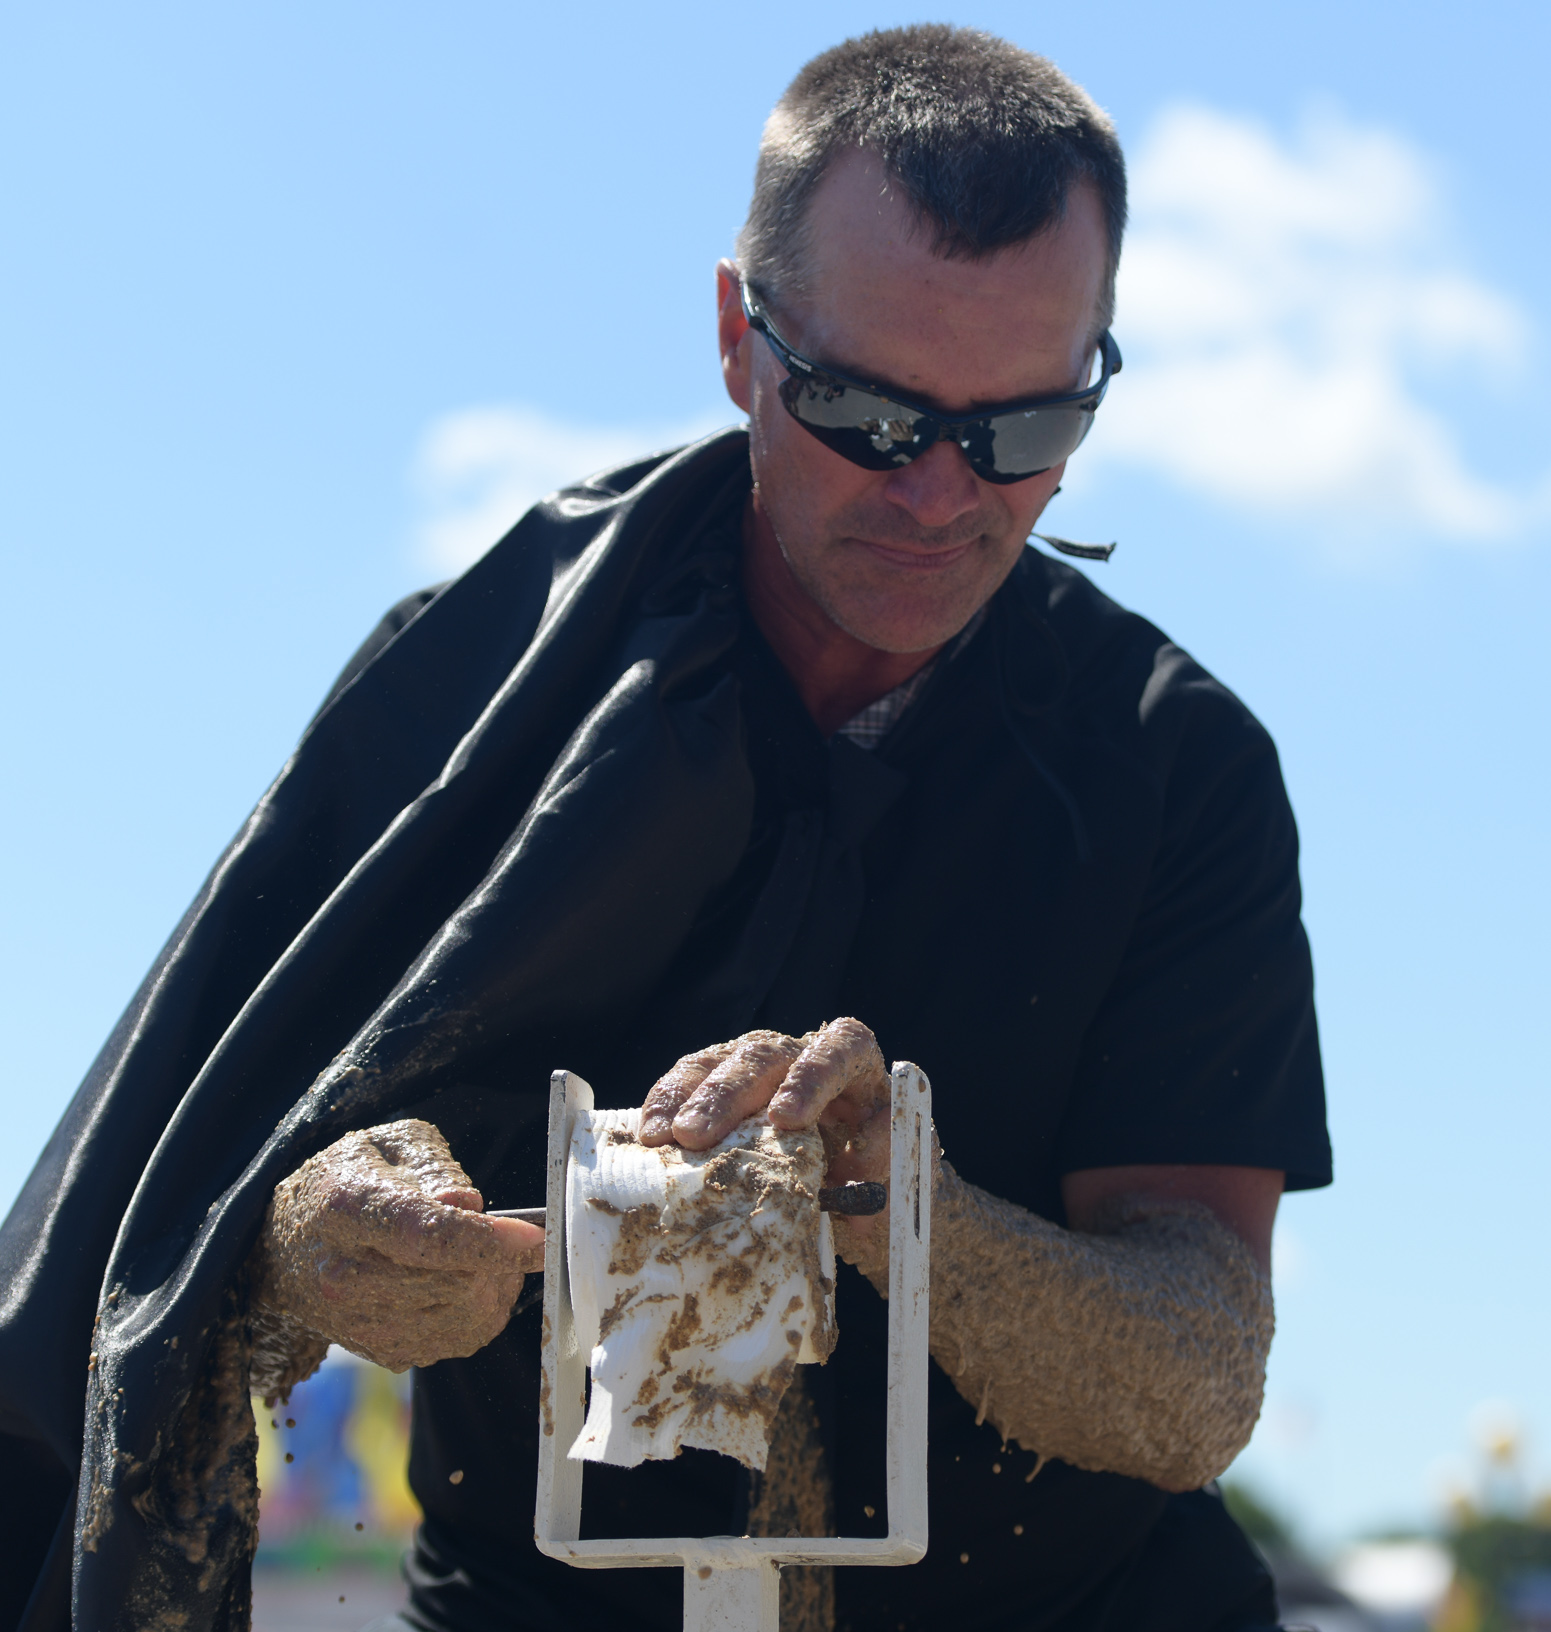 Dave Moses, of team Space Balls, tries to thread a roll of toilet paper onto a toilet paper holder during the Outhouse Race at the Iowa State Fair. Photo credit: Joseph L. Murphy/Iowa Soybean Association